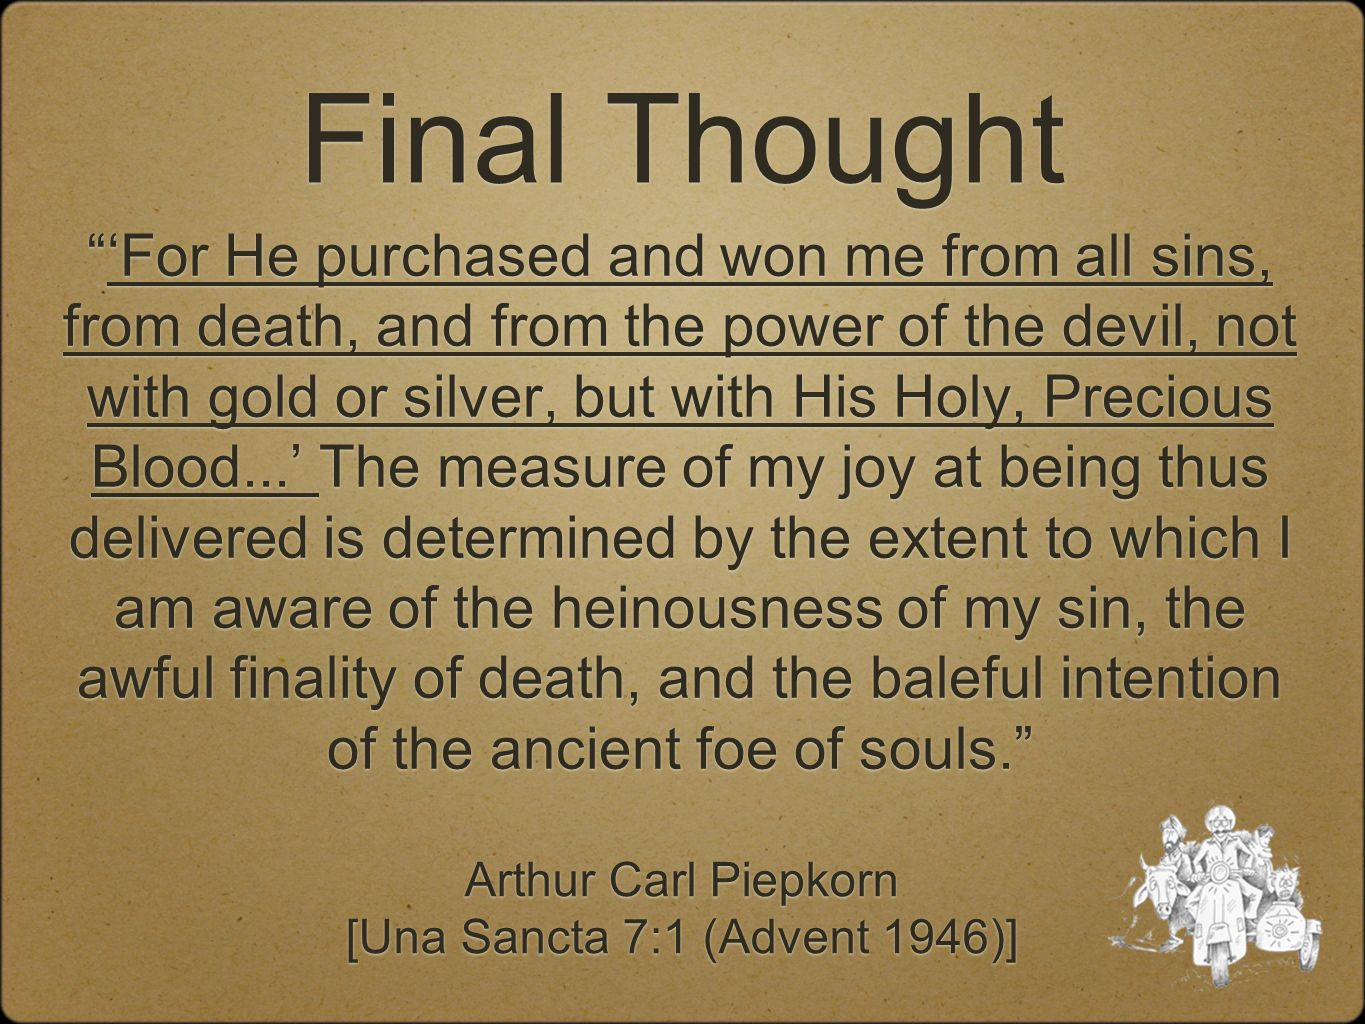 [Una Sancta 7:1 (Advent 1946)]